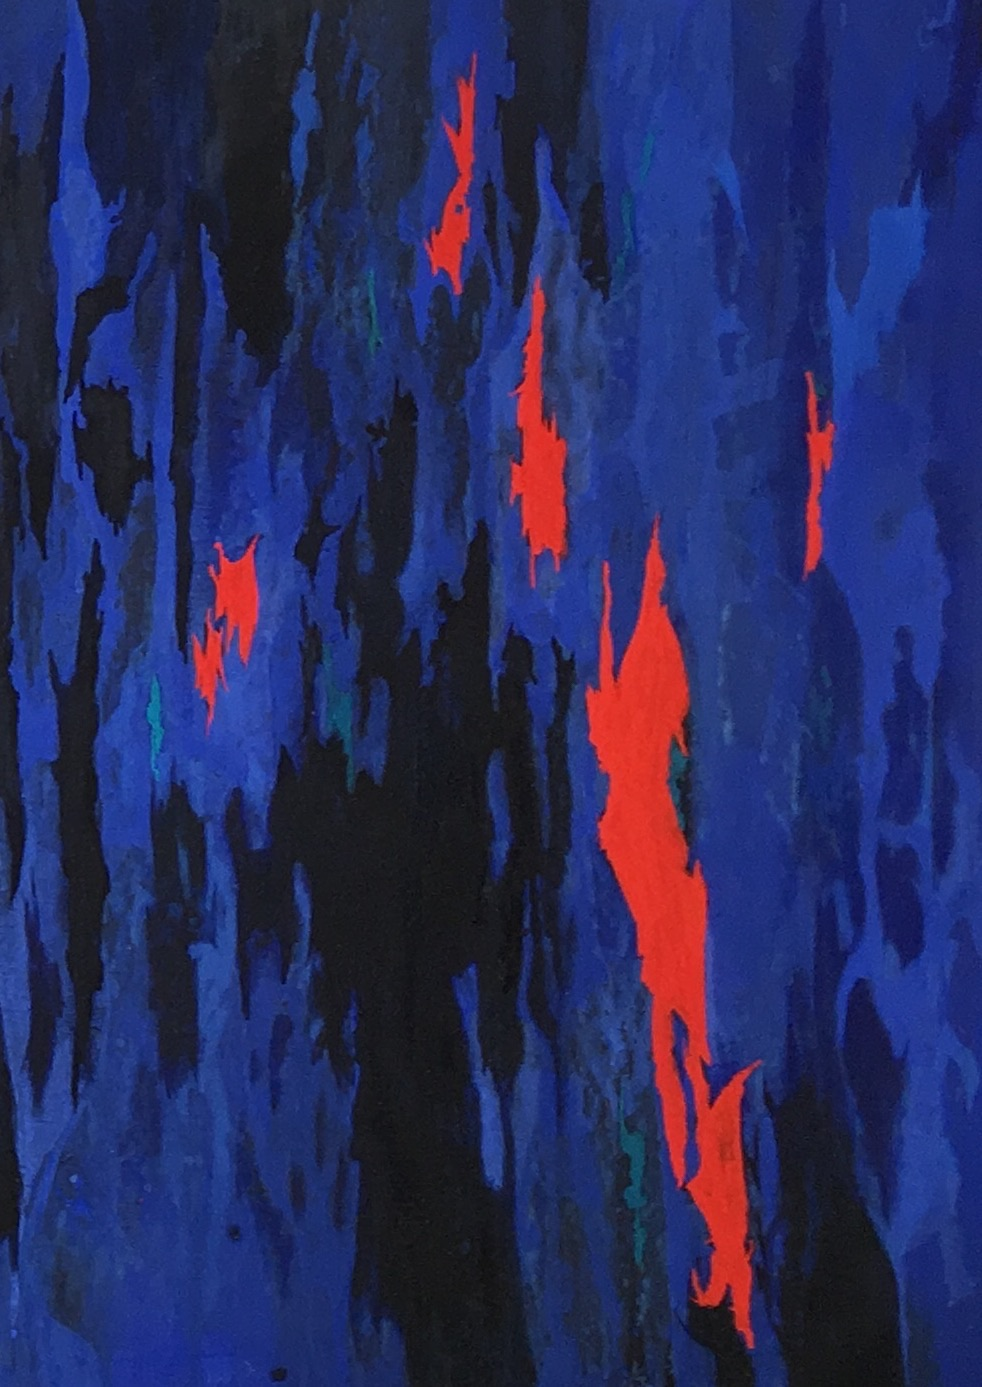 Composition in Blues and Orange 2, Milk Paint on board, 64 x 43 cm 2016, Private Collection